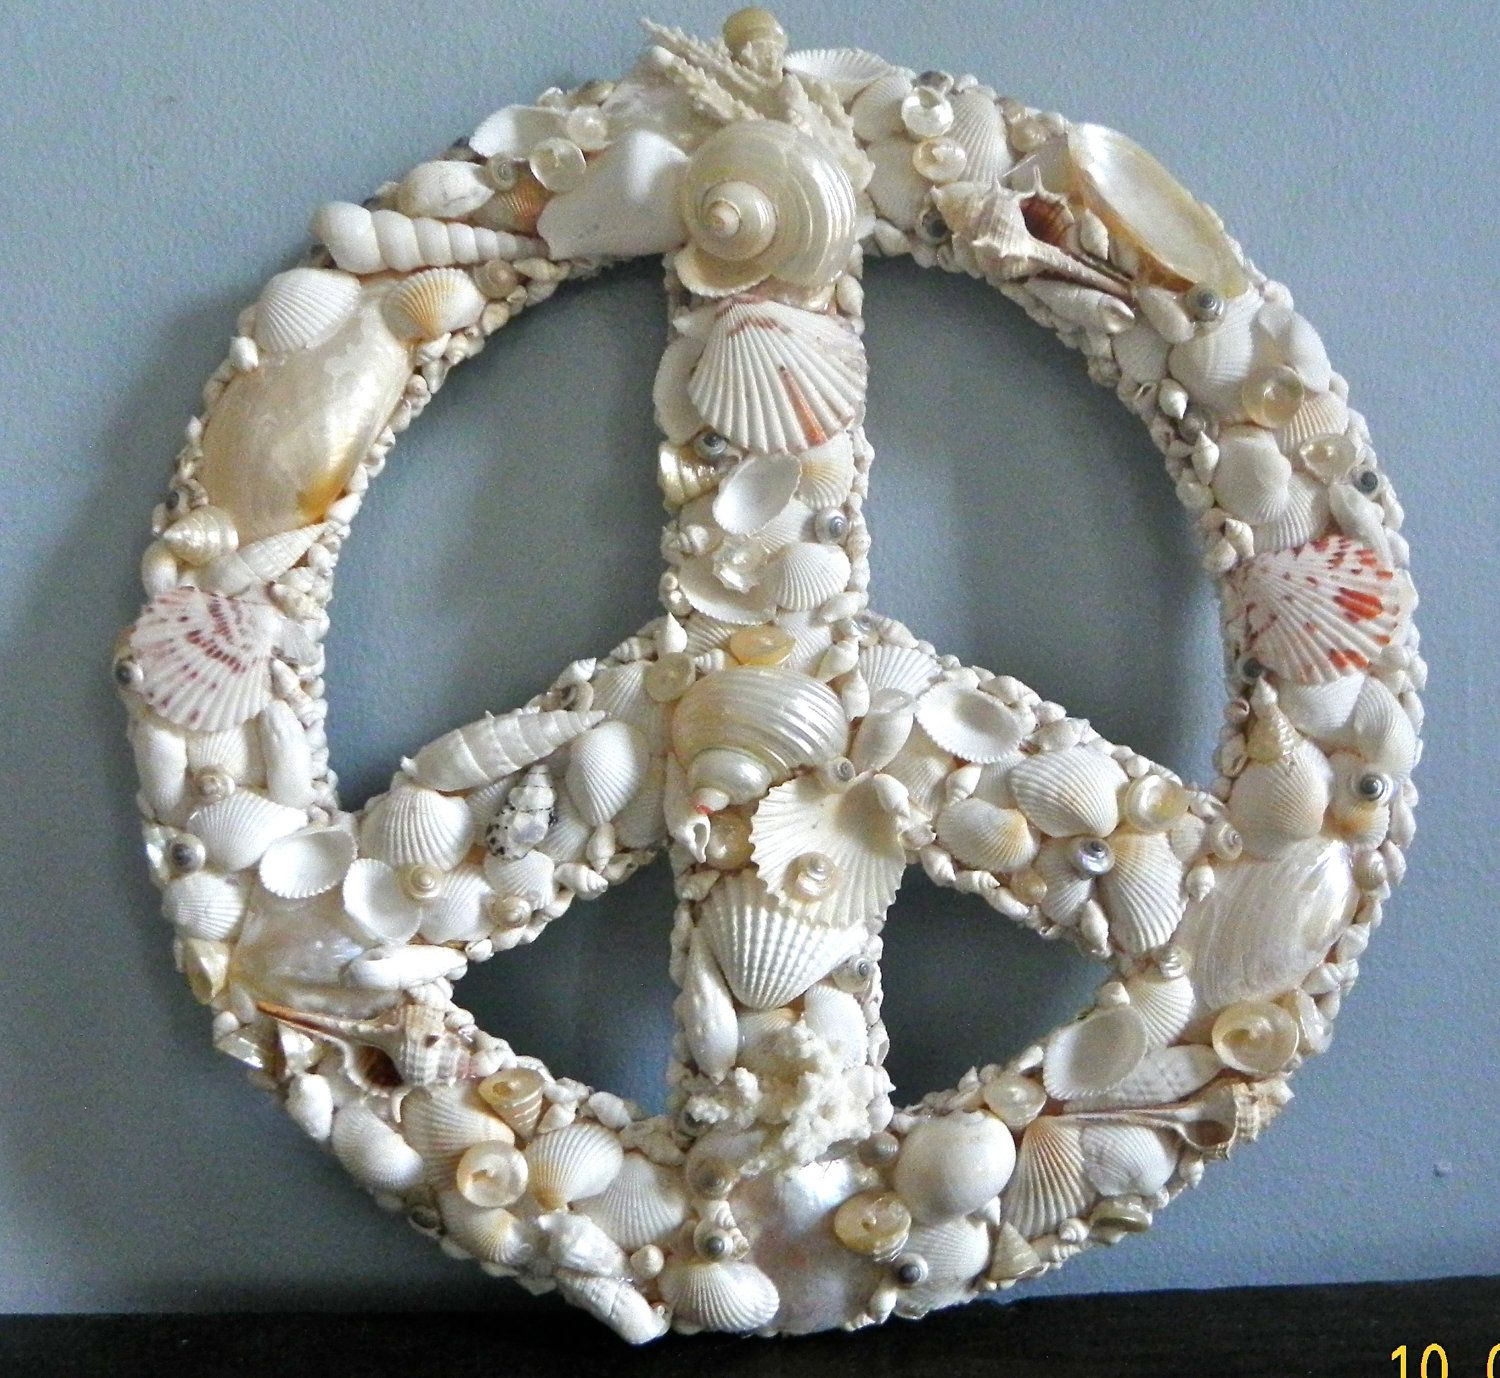 Peace Sign Decorating Ideas Brilliant Beach Decor Seashell Encrusted Peace Sign Wreath$6000 Via Etsy Inspiration Design